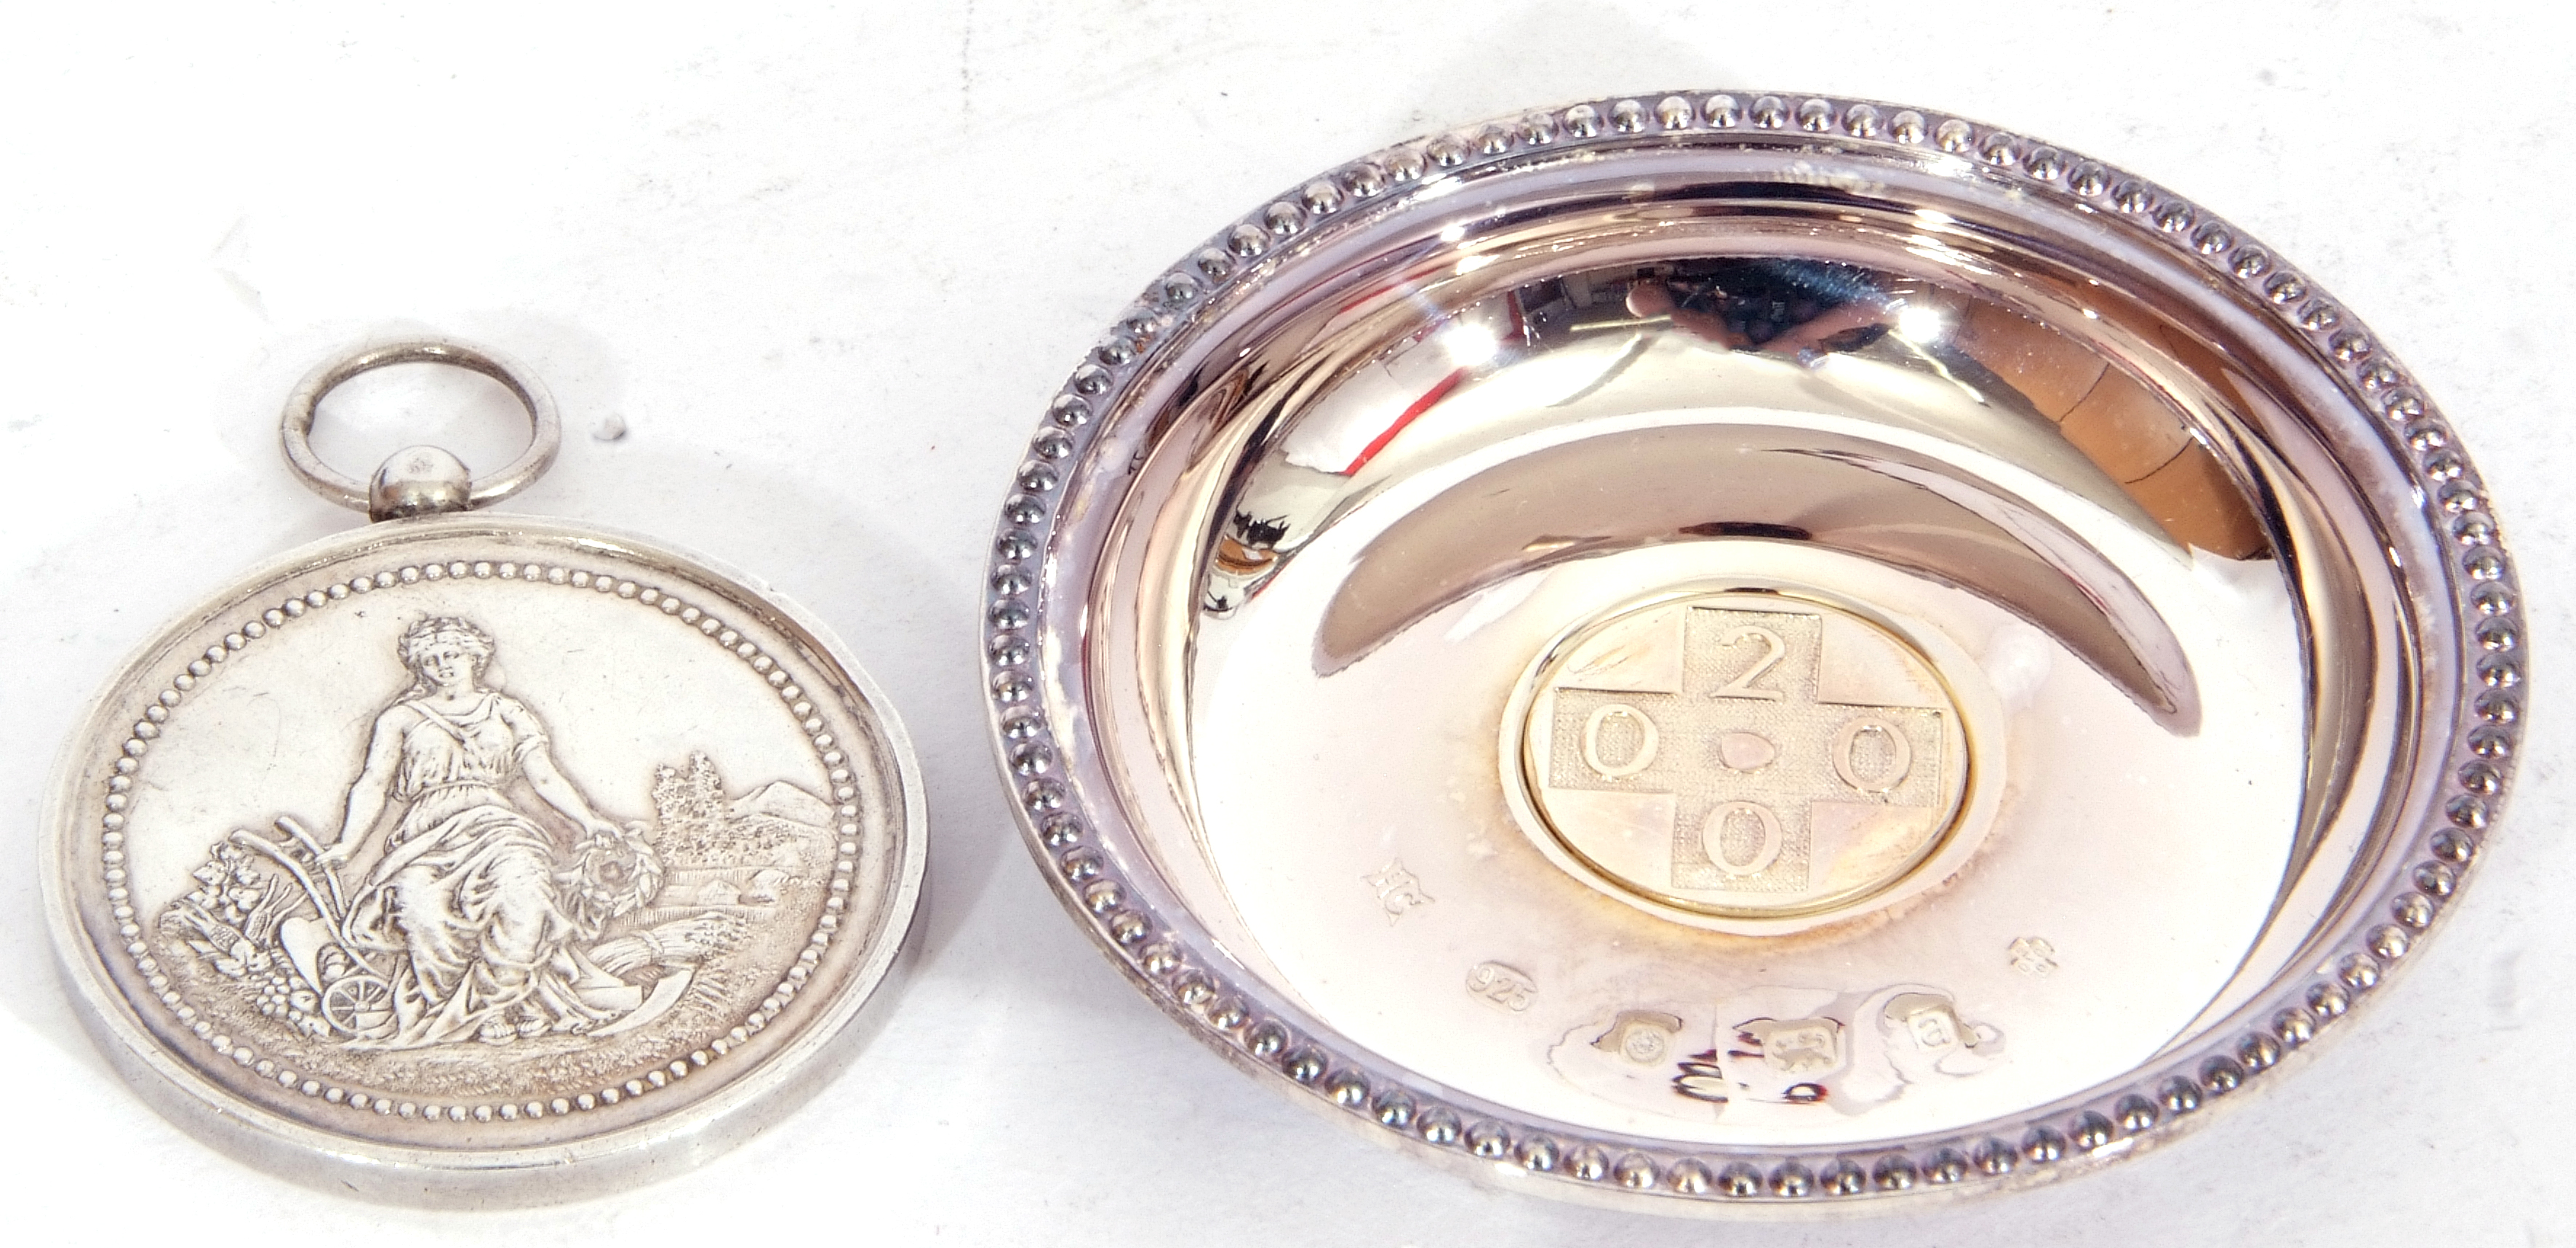 """Hallmarked silver miniature circular dish, """"2000"""" together with a French agricultural medallion - Image 2 of 9"""